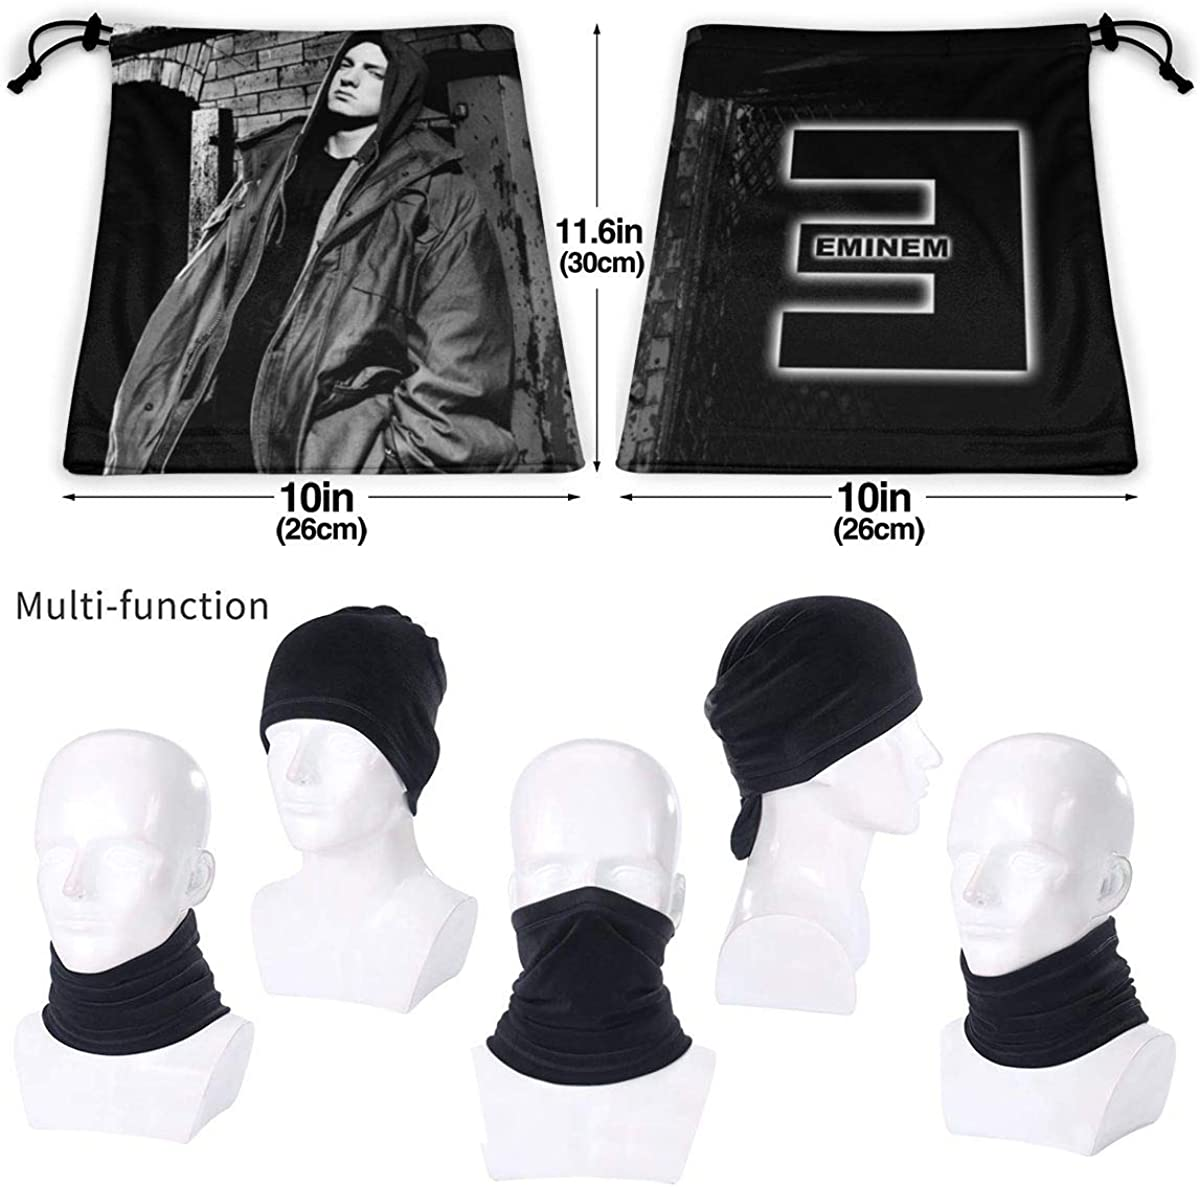 Eminem Highly Elastic Warm Microfiber Neck Thermal Mask Scarf Unisex Windproof Suitable For Winter